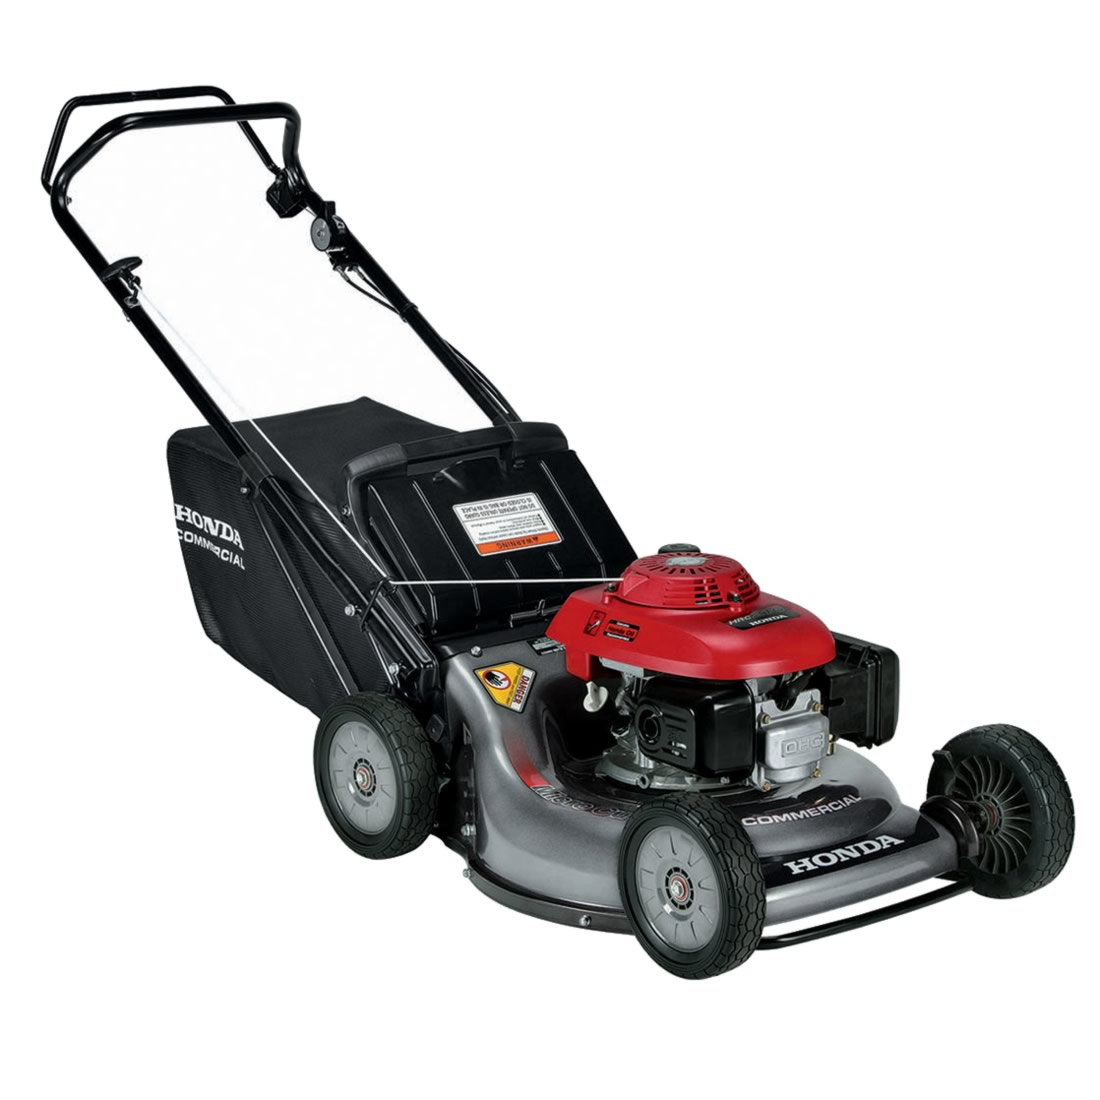 How to Maintain a Honda HRC Lawn Mower Honda's HRC lawn mowers are known as  some of the best on the market, frequently used by those in commercial ...